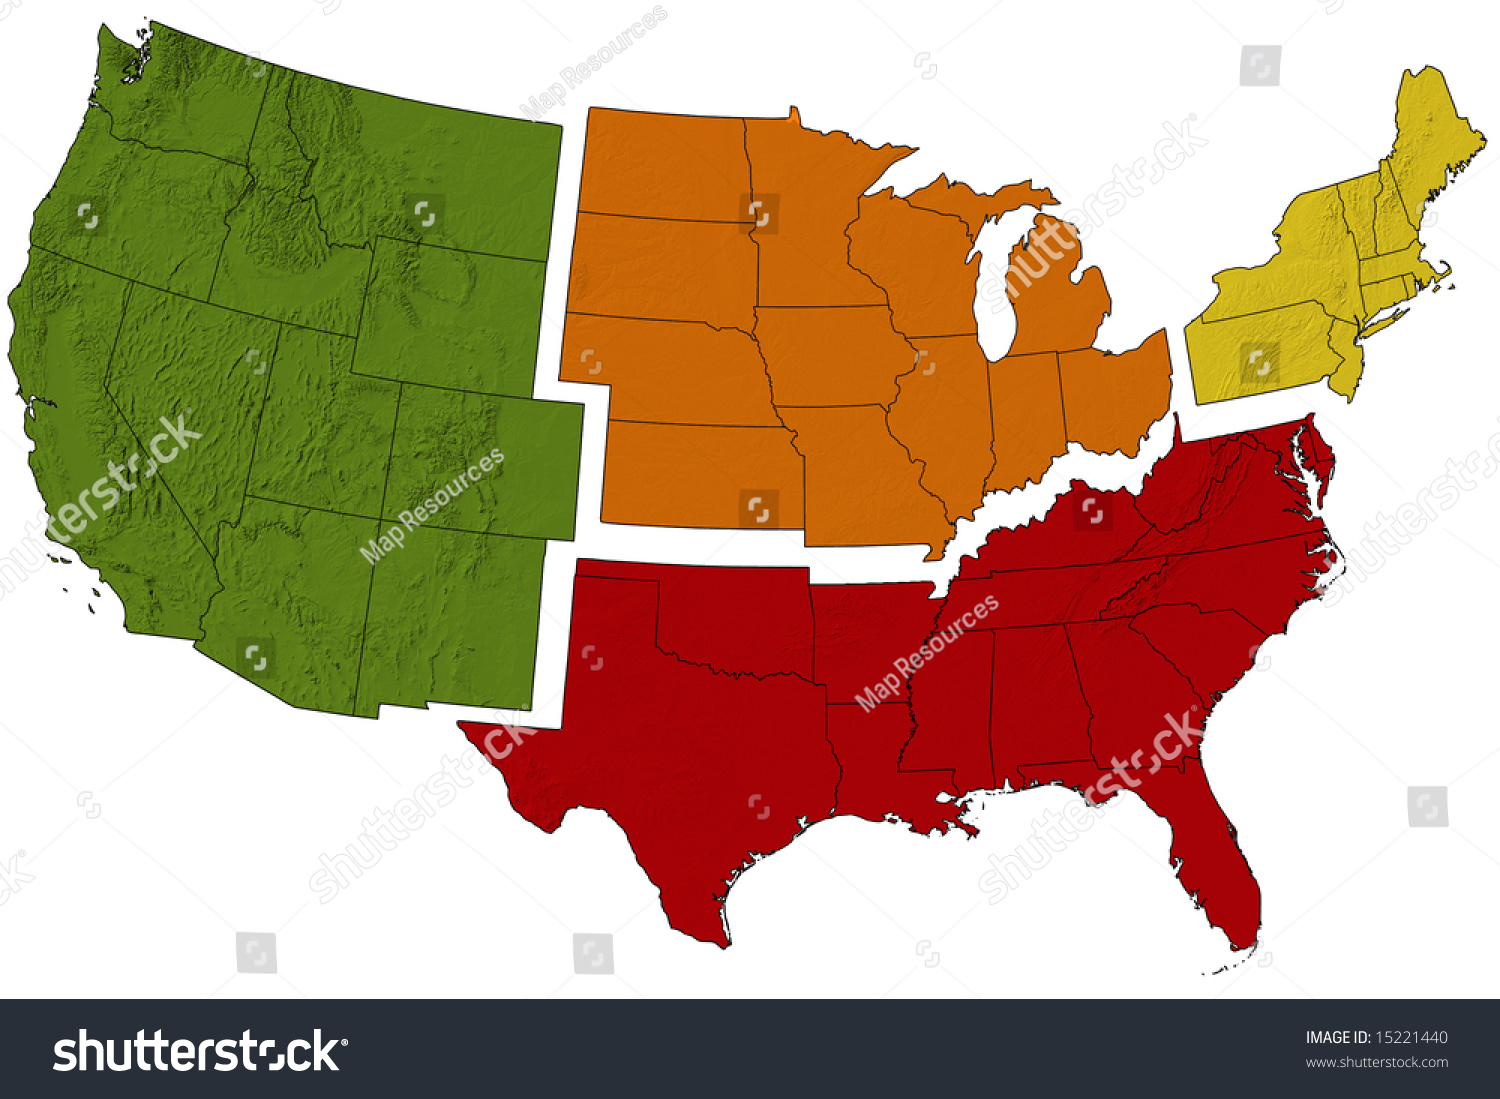 Usa Map Divided Into Regions Stock Illustration - Us map divided into regions